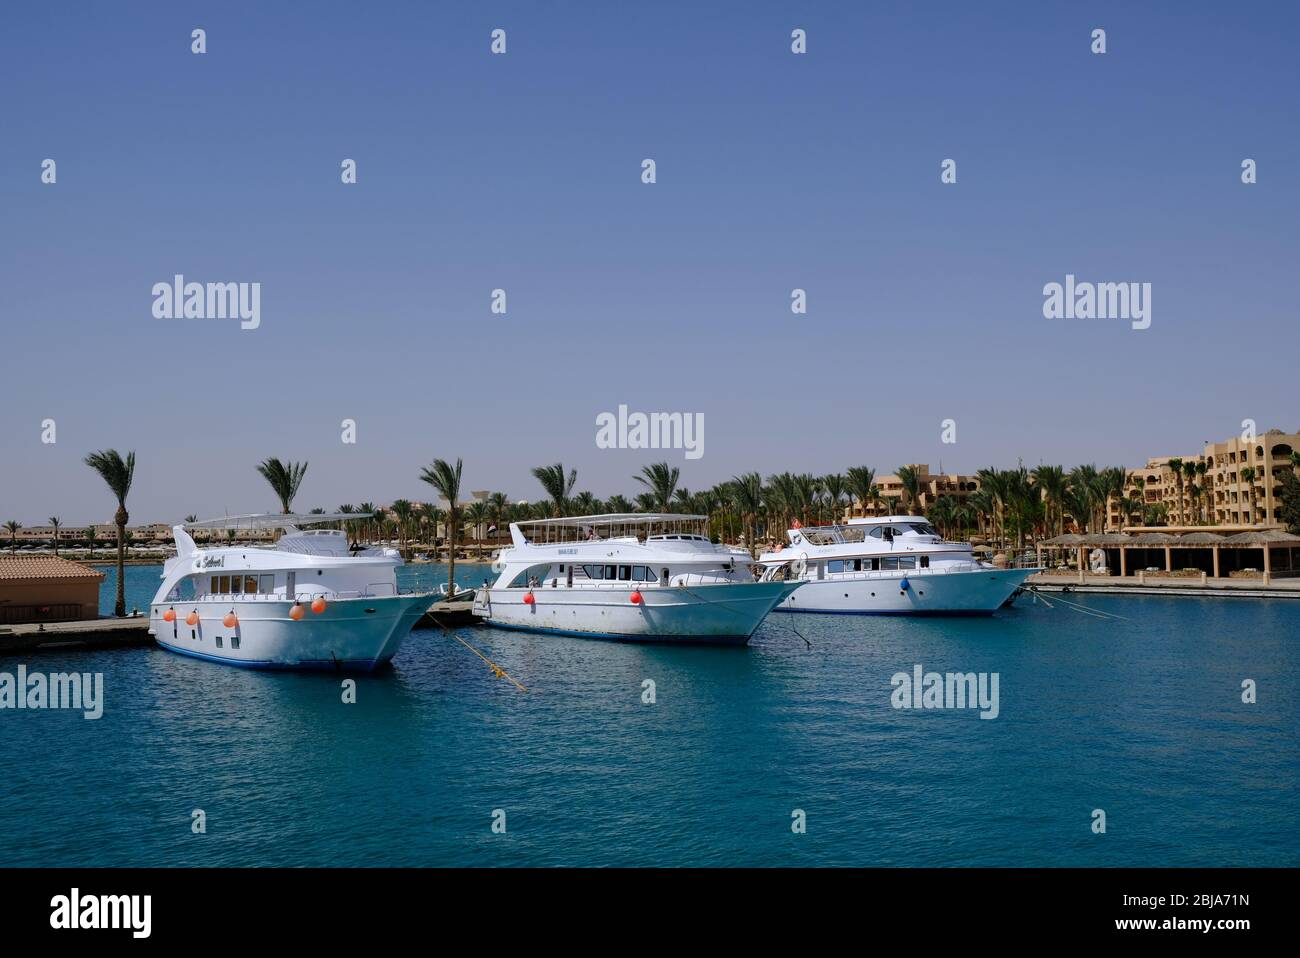 Hurghada Egypt May 2019 Yachts And Tourist Boats In The Hurghada Marina In Hurghada Popular Beach Resort Town Along Red Sea Coast Of Egypt Stock Photo Alamy